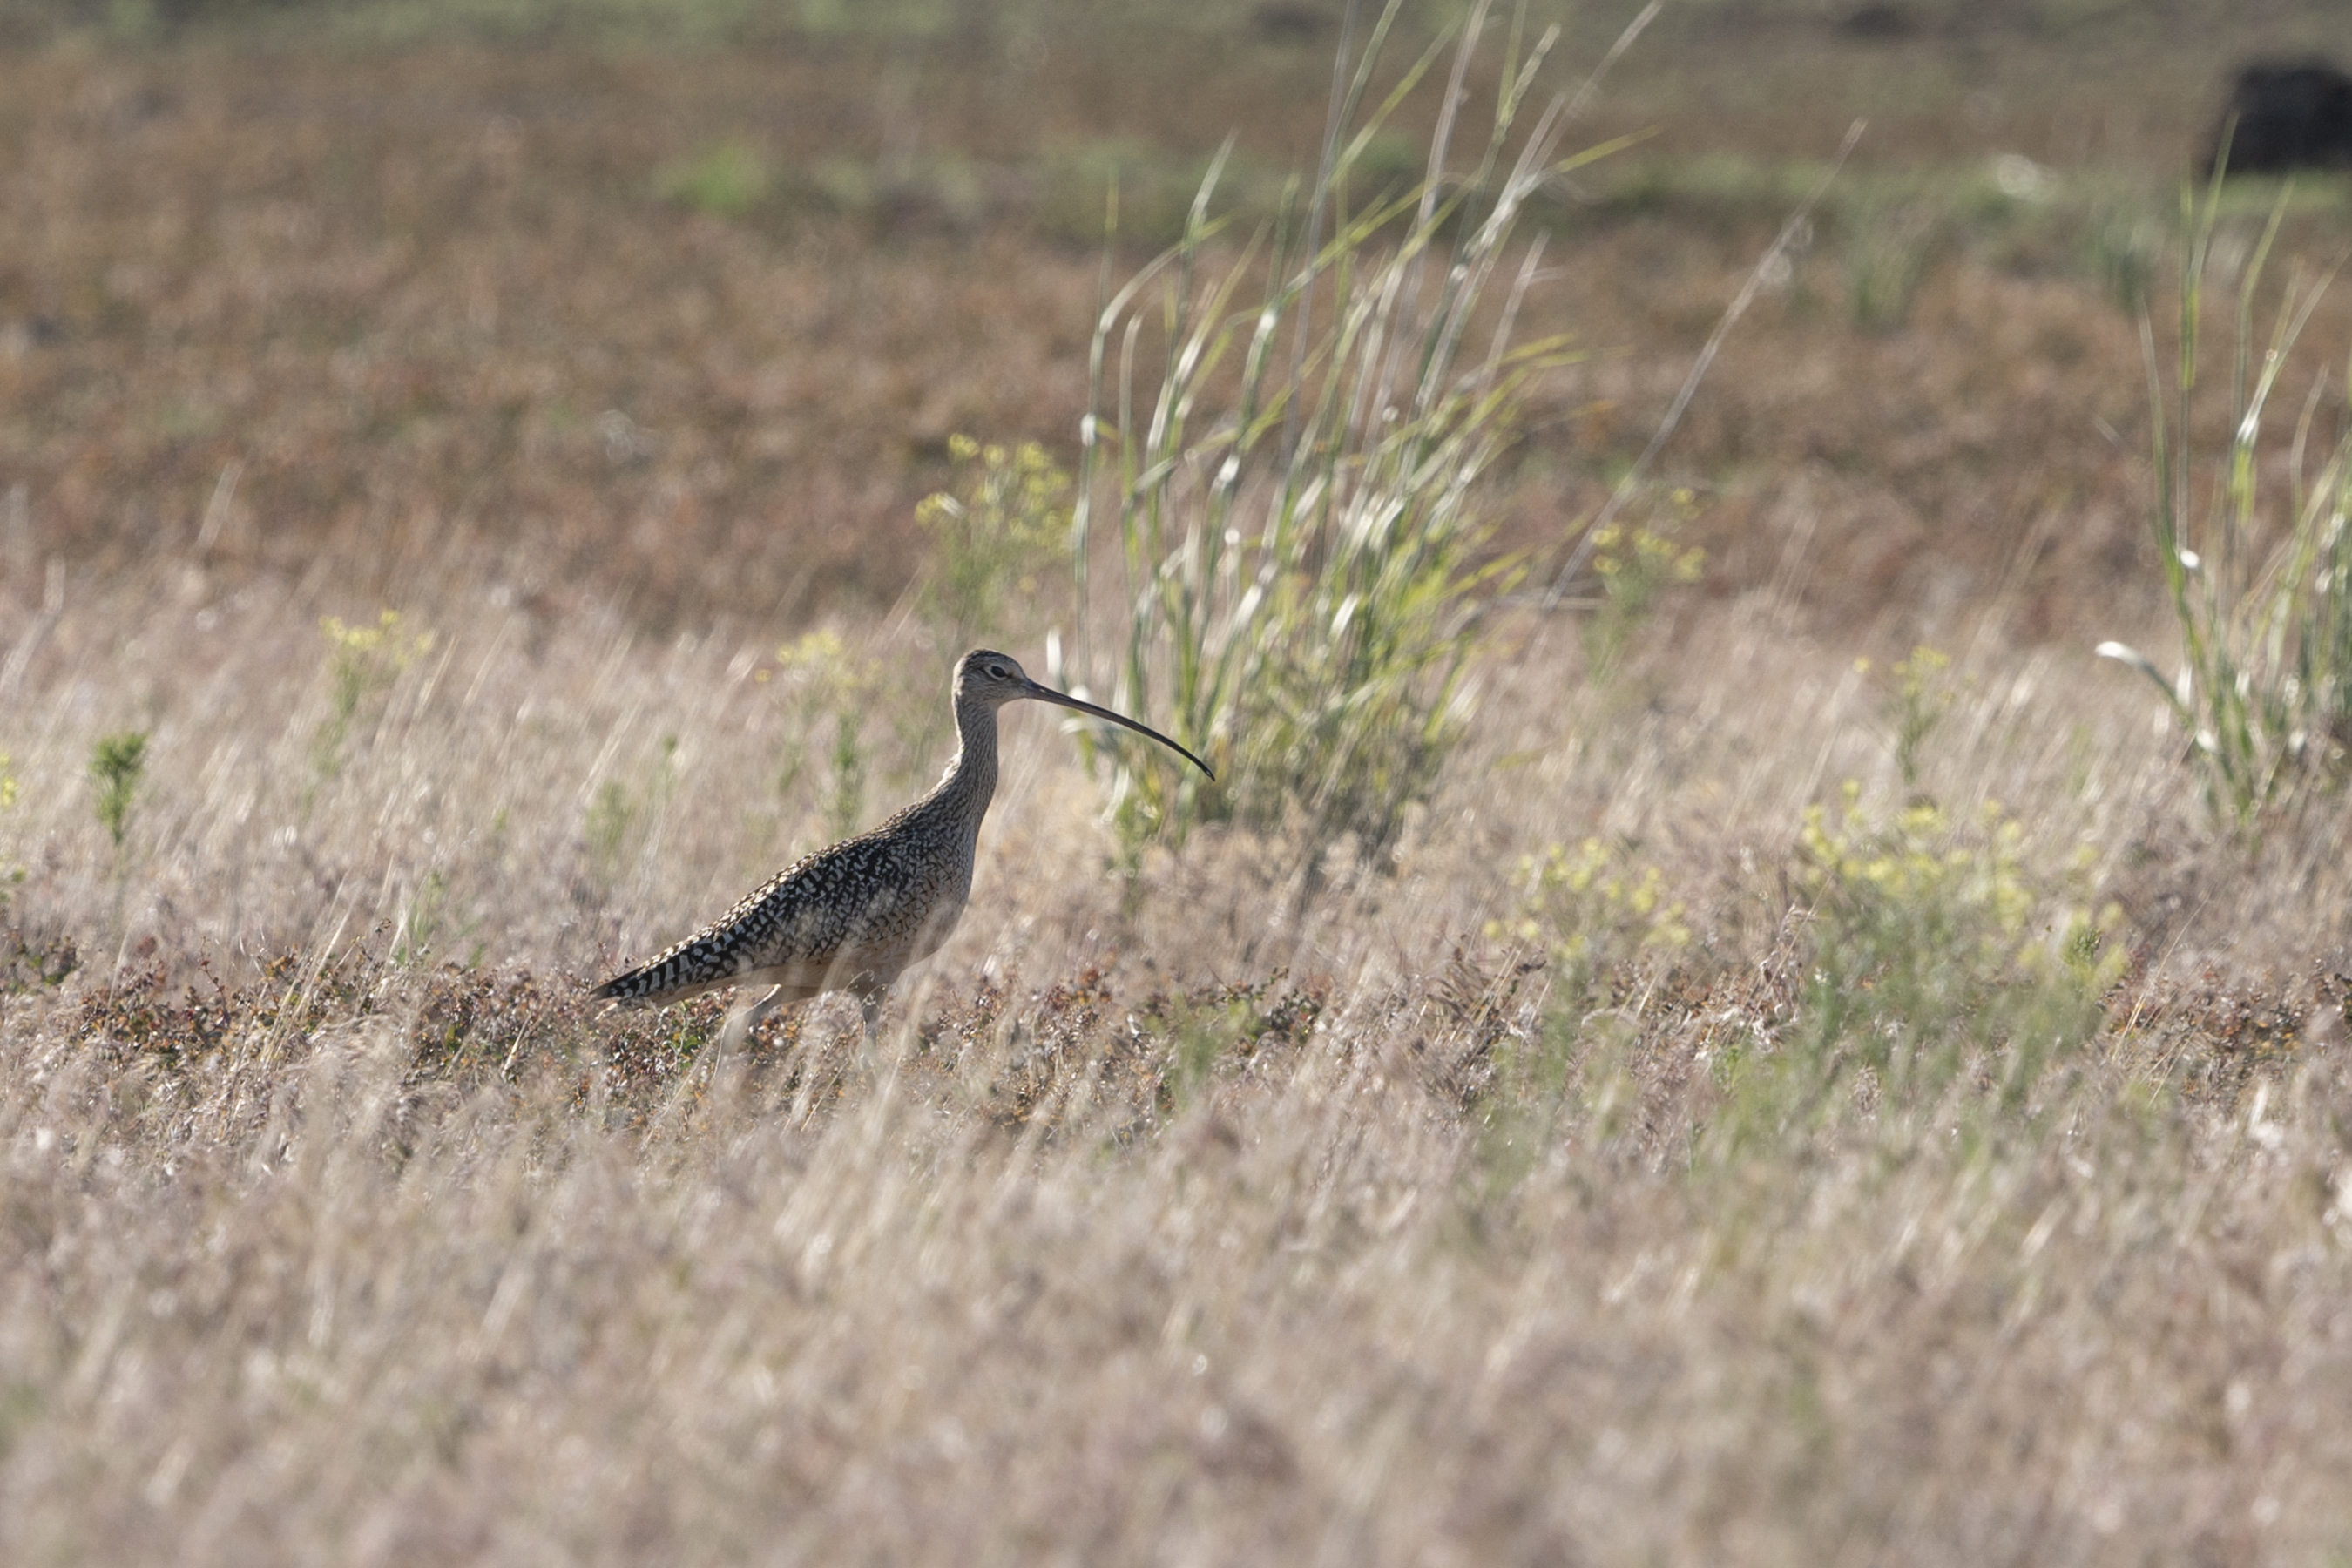 A rare long-billed curlew